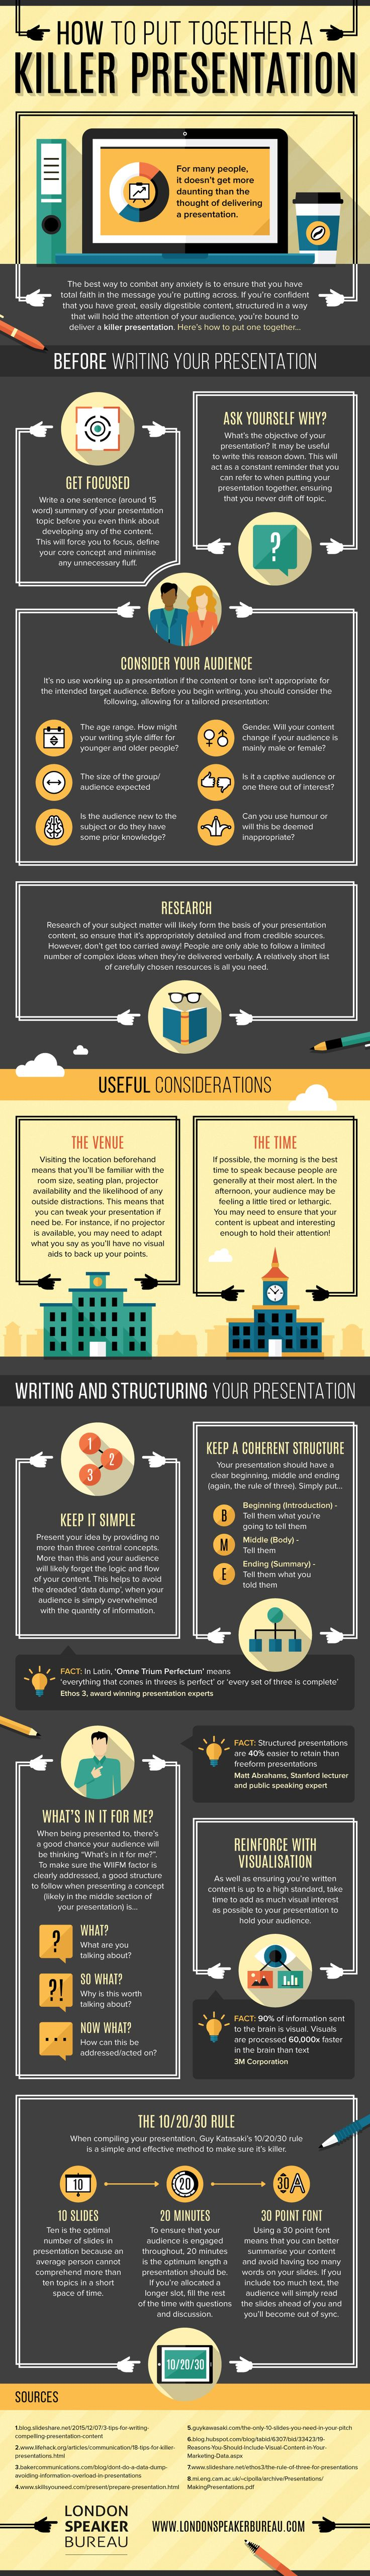 How to Put Together a Killer Presentation in 13 Simple Steps